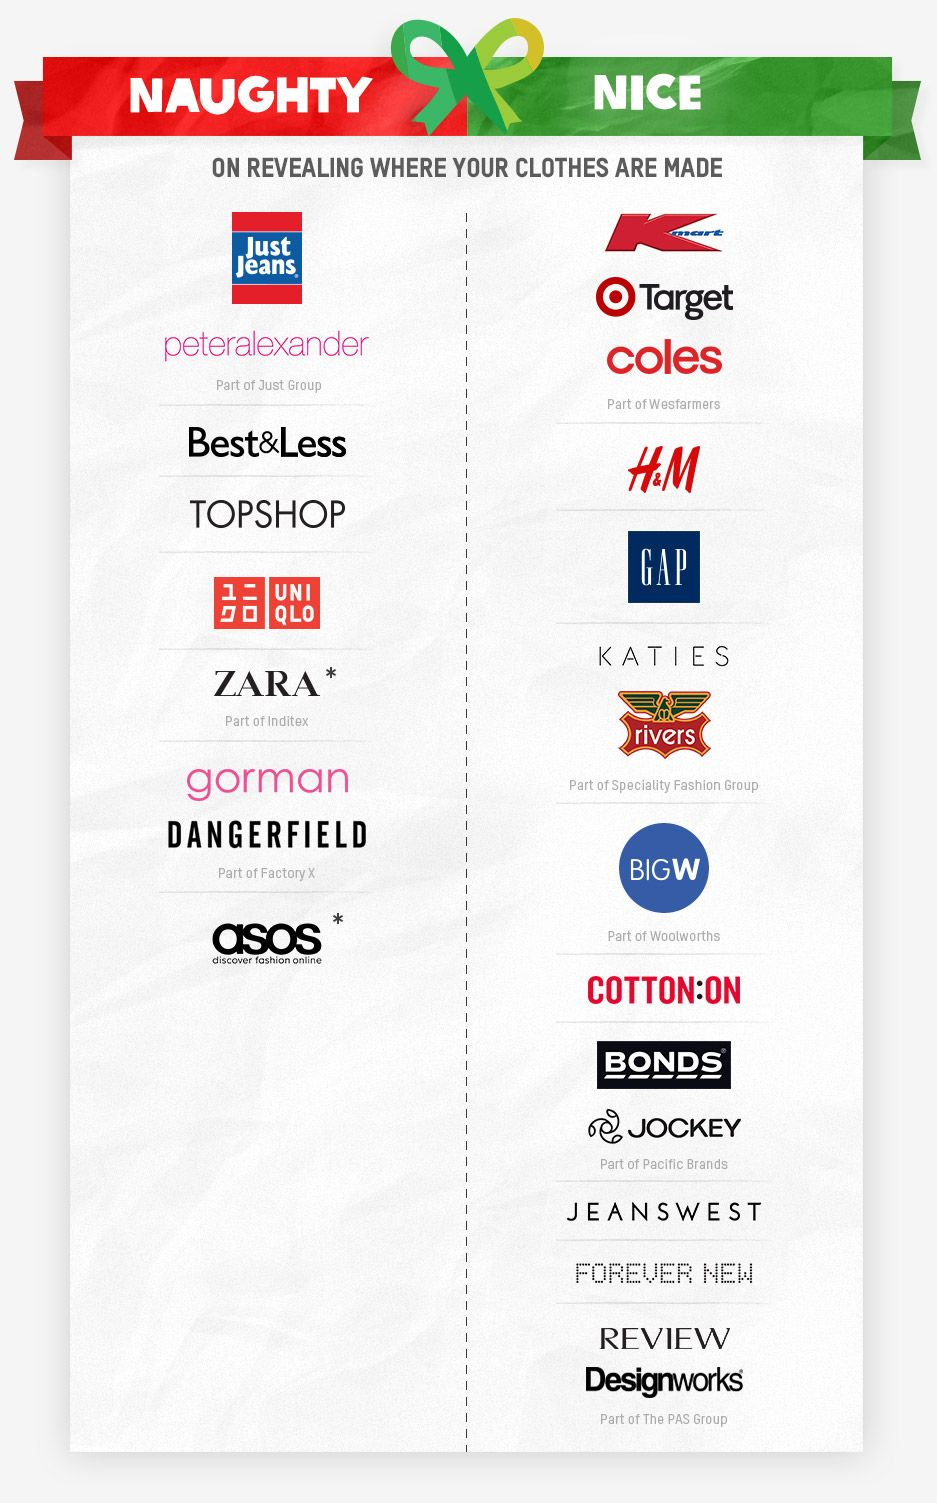 Oxfam Publishes Naughty And Nice List Of Ethical Fashion Brands